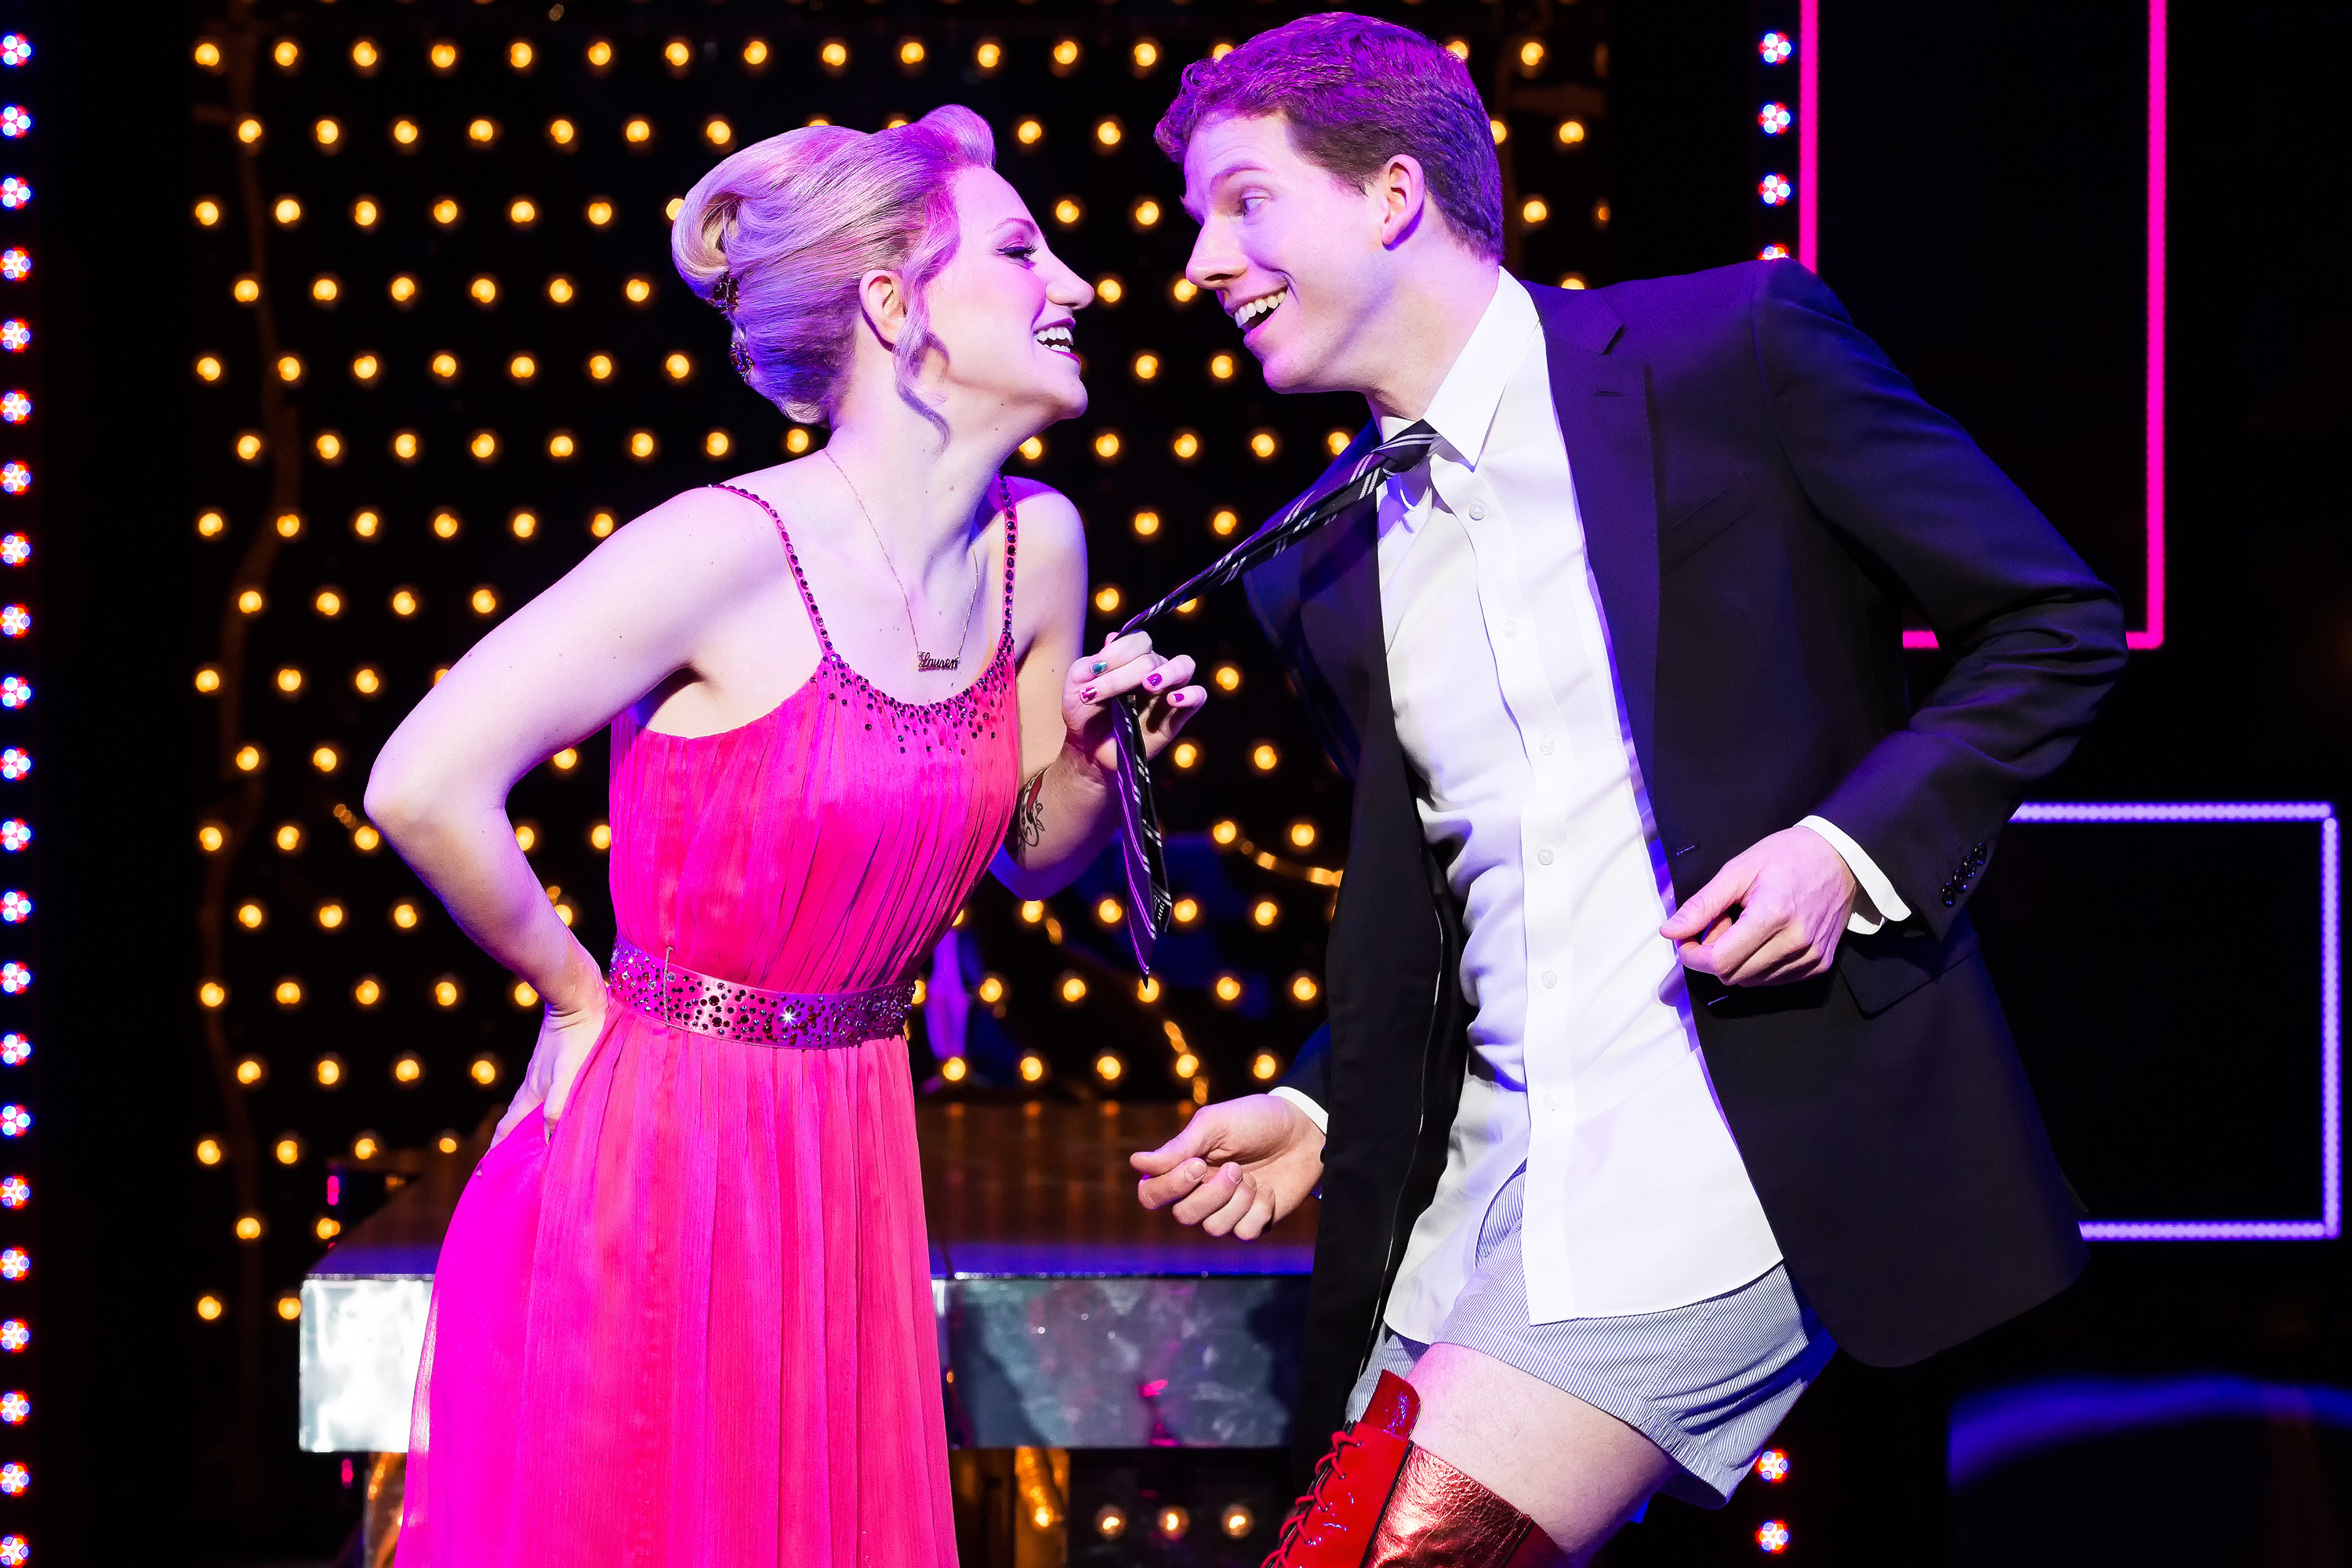 Regarde une feuille de personnage Kinky_Boots_Broadway_230_email_1